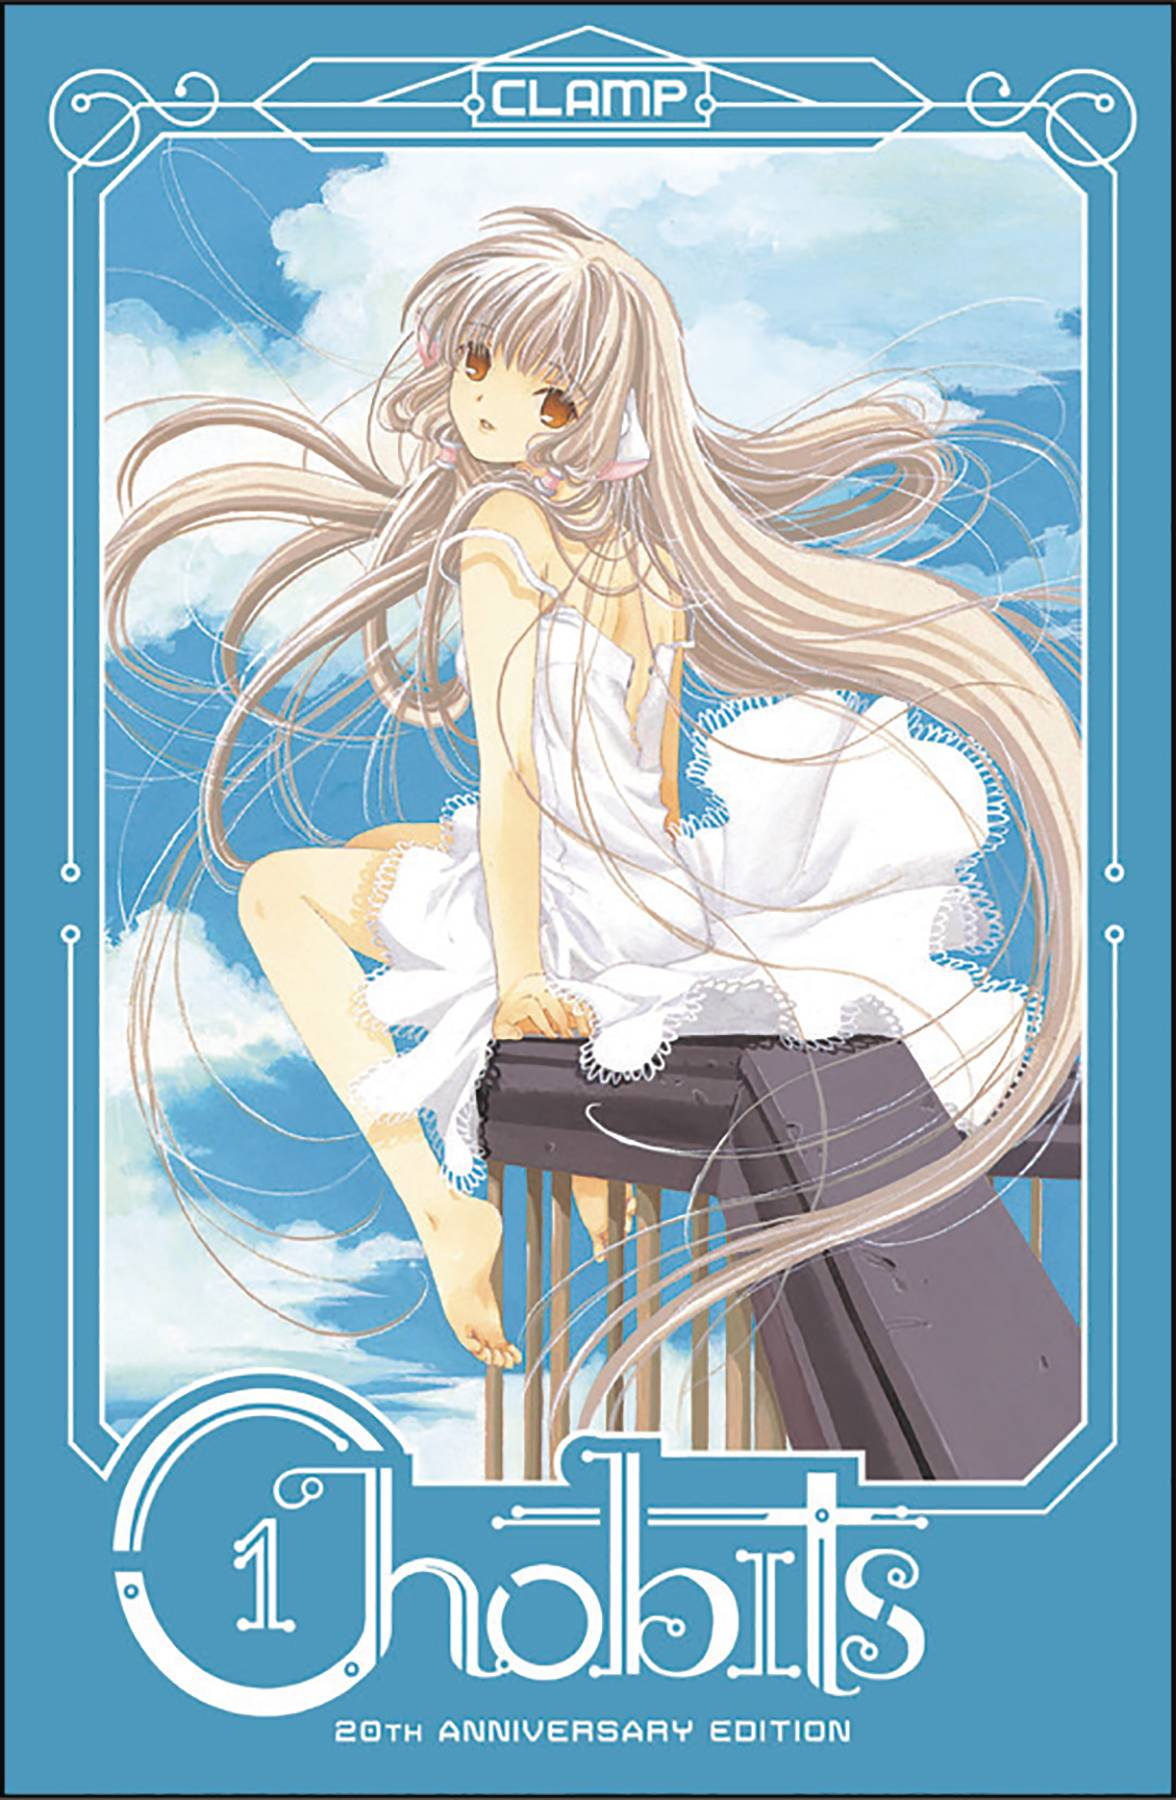 CHOBITS 20TH ANNIVERSARY ED HC (RES)